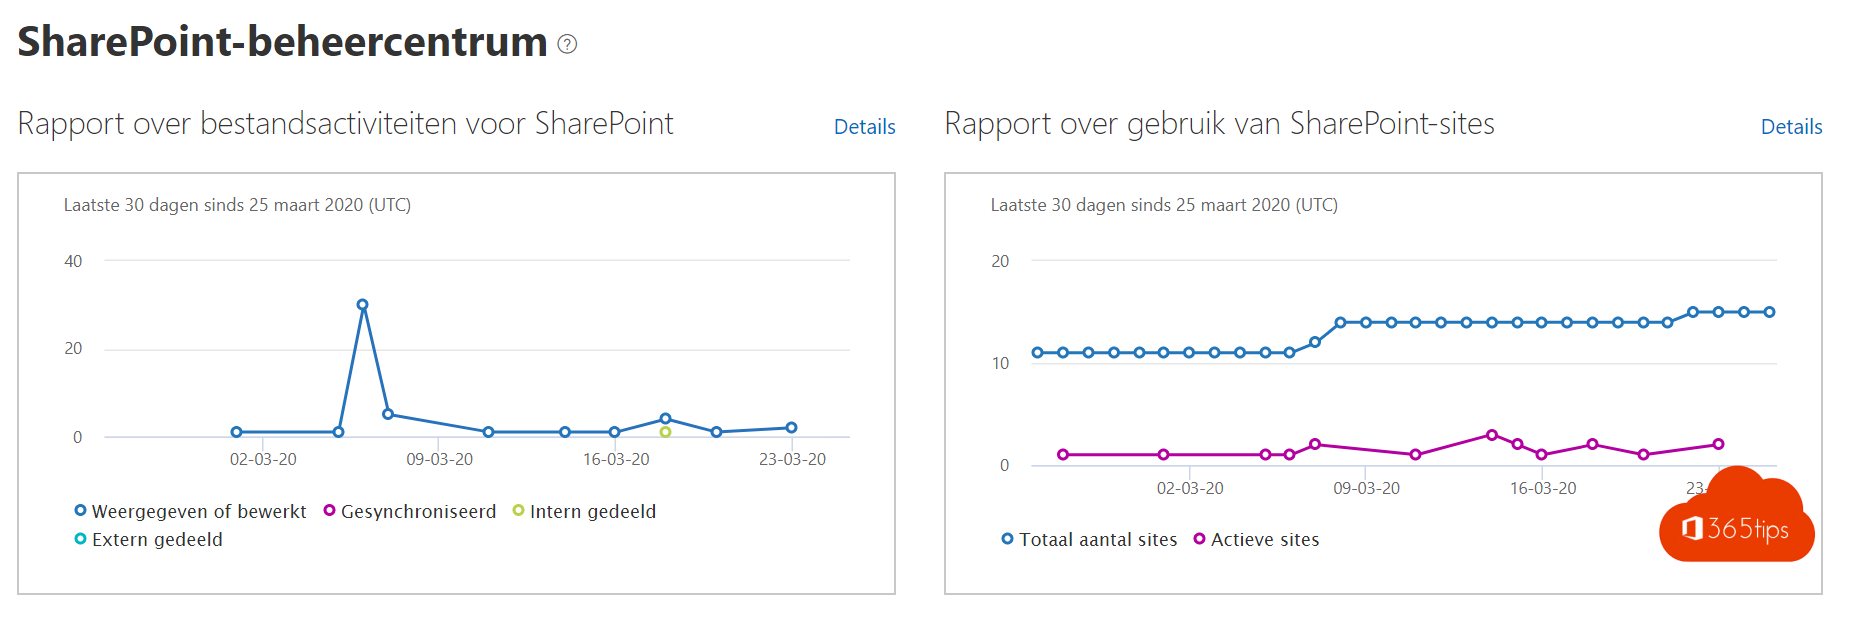 SharePoint Beheercentrum